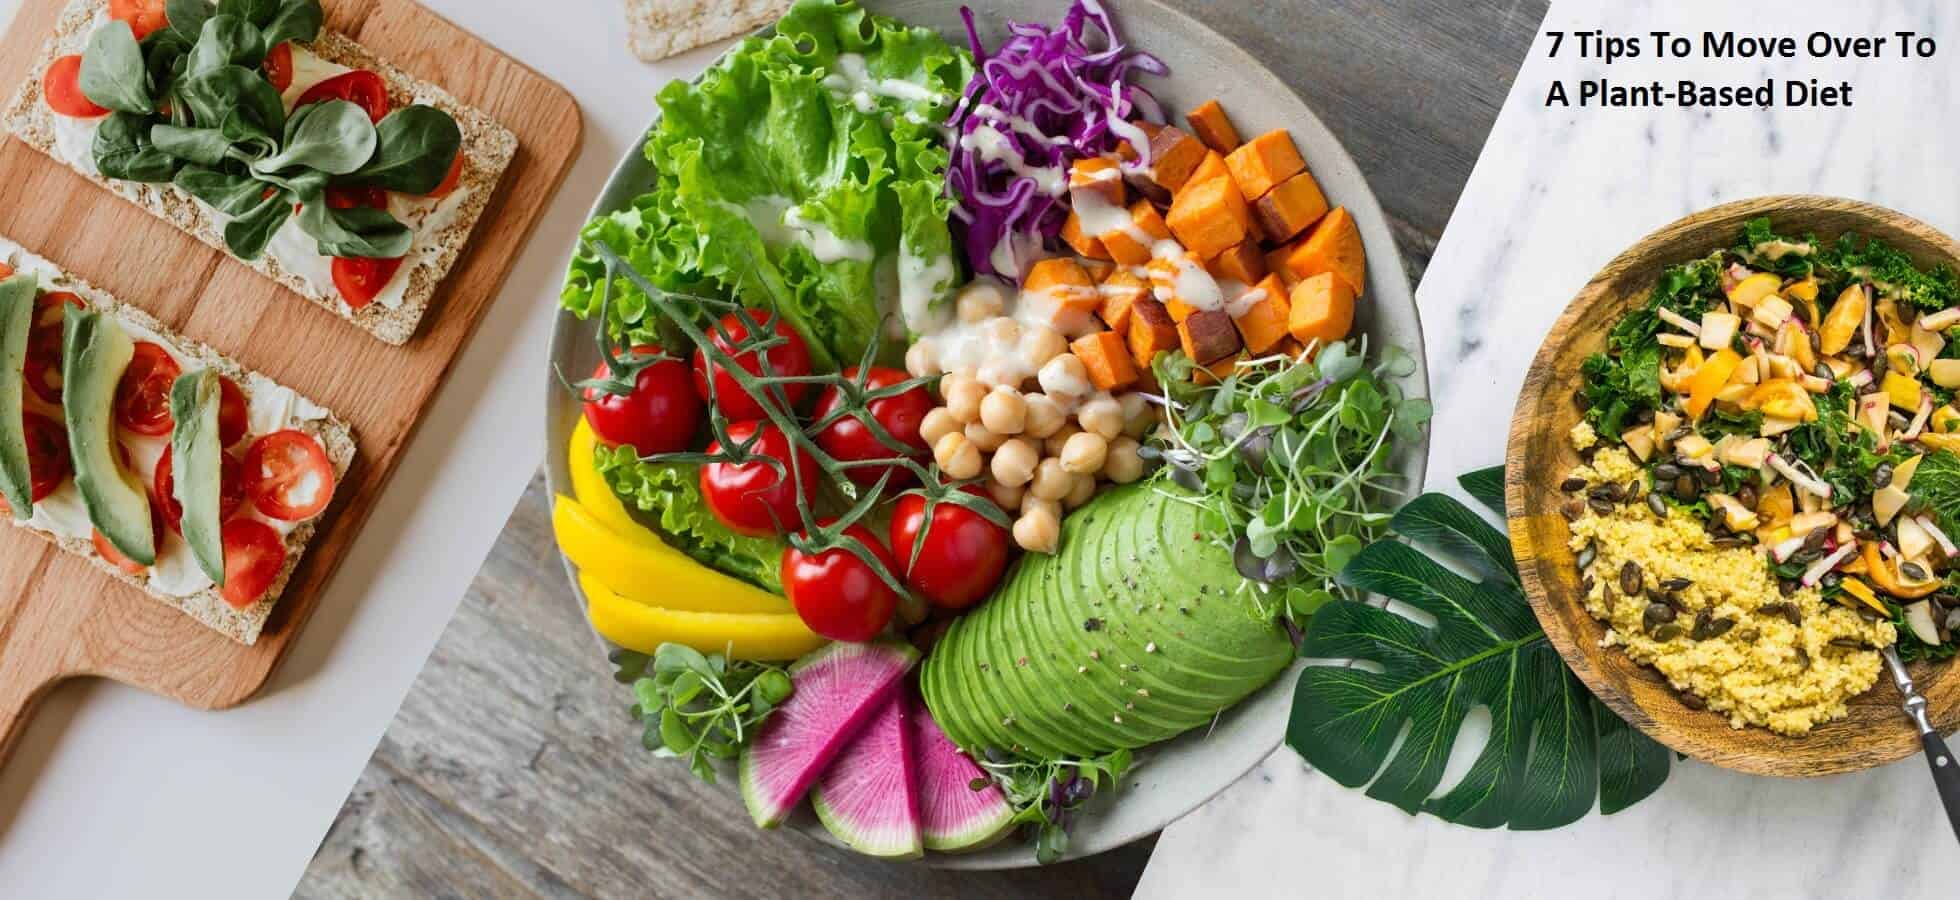 7 Tips To Move Over To A Plant-Based Diet